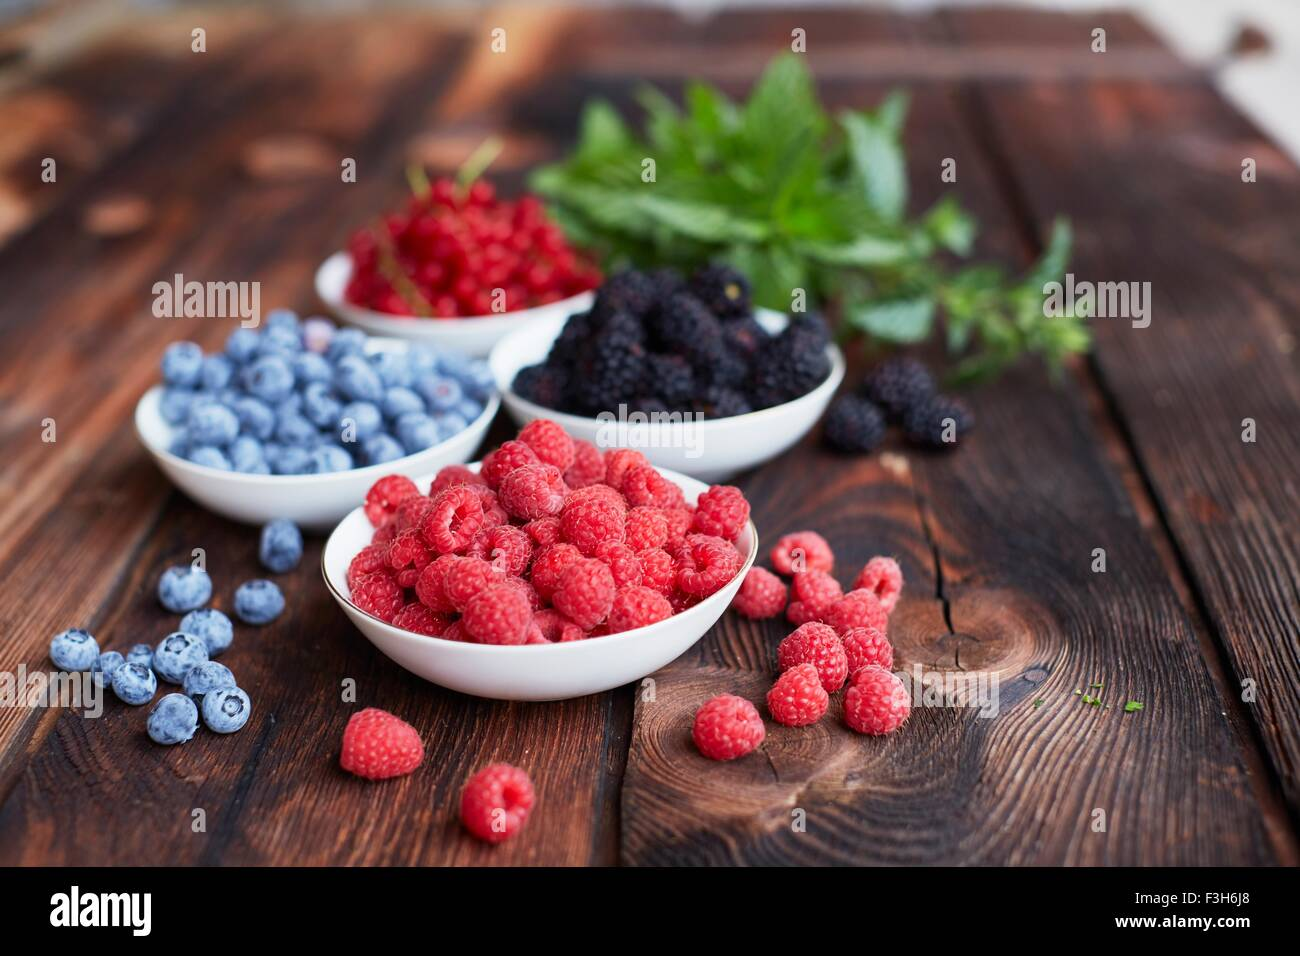 Picnic table with four bowls of fresh berries - Stock Image